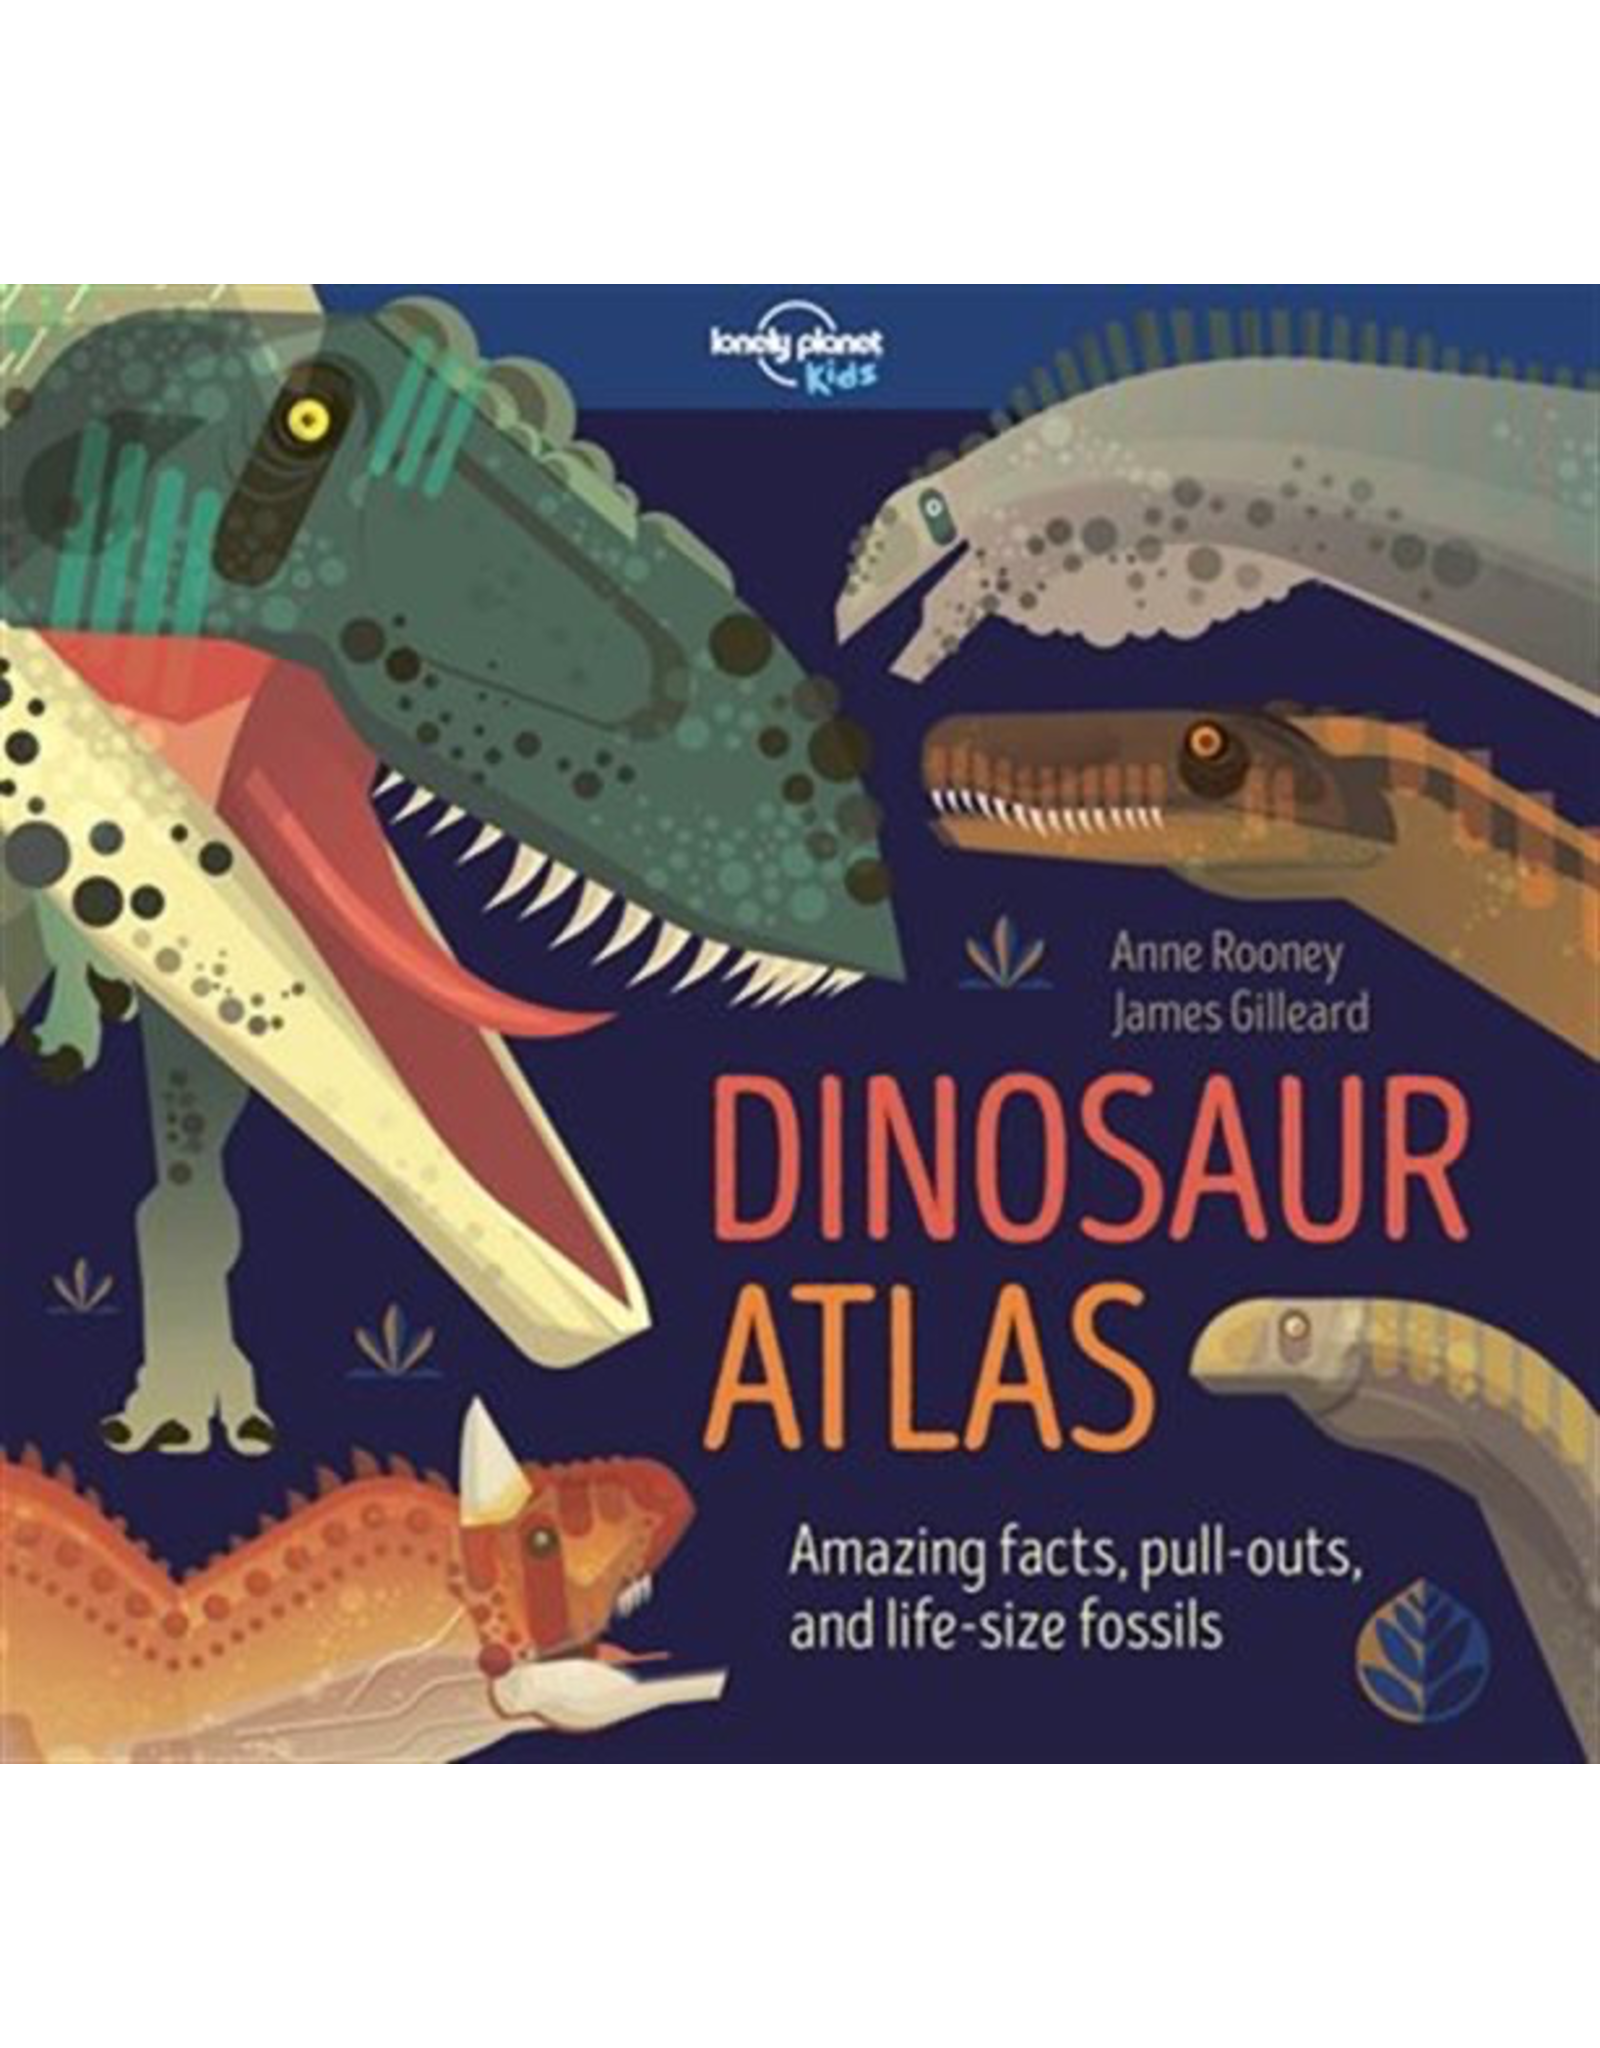 Raincoast Books DINOSAUR ATLAS Amazing facts, pull-outs and life-size fossils